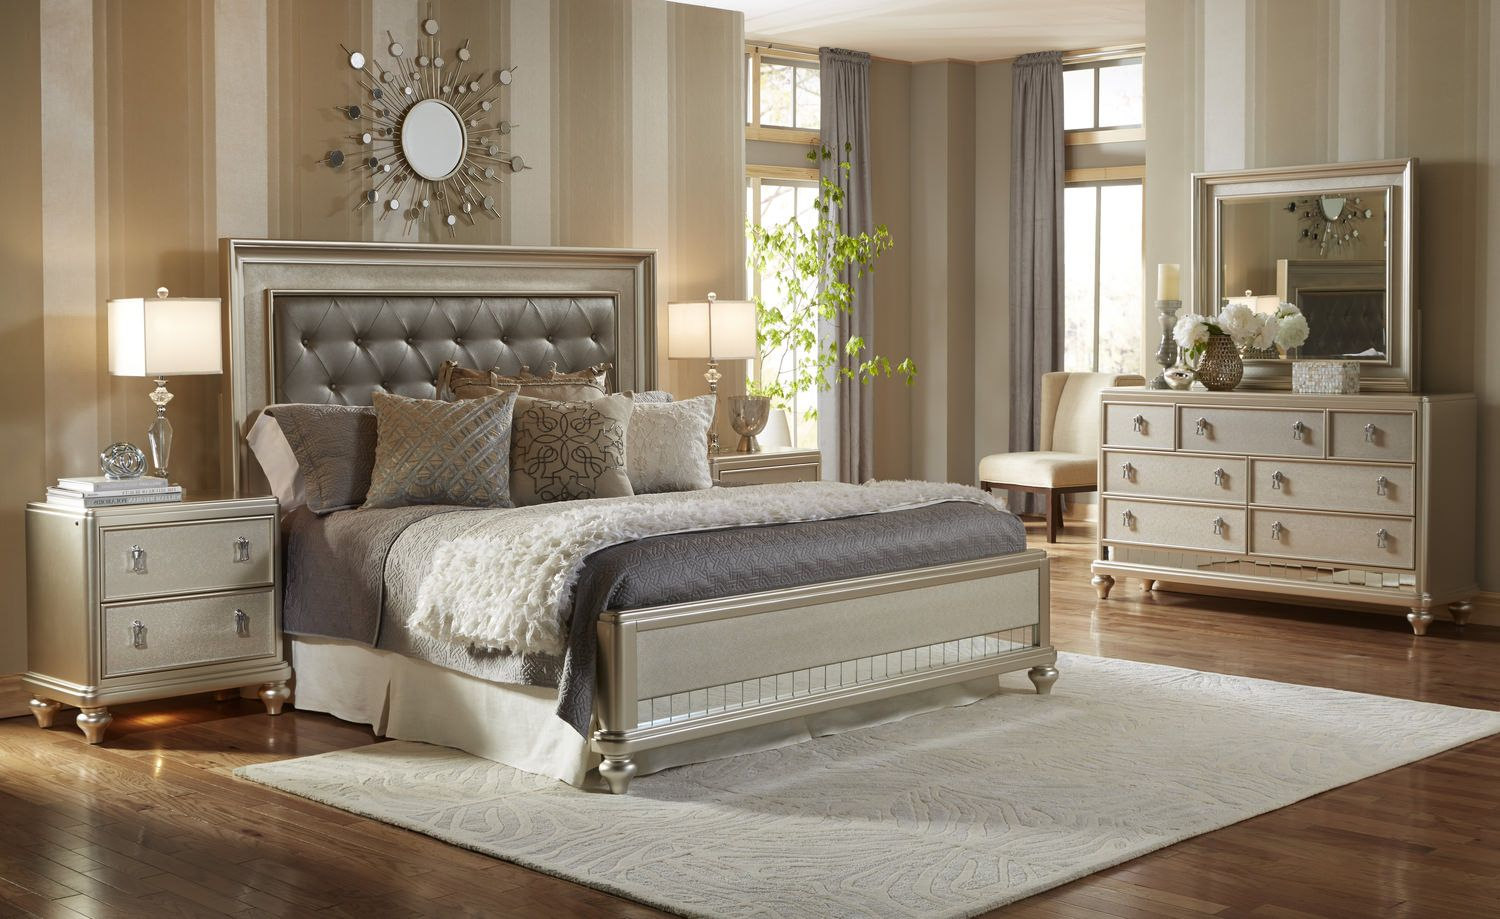 Bedroom Suite Ideas Upholstered Bedroom Set Diva Bedroom Set